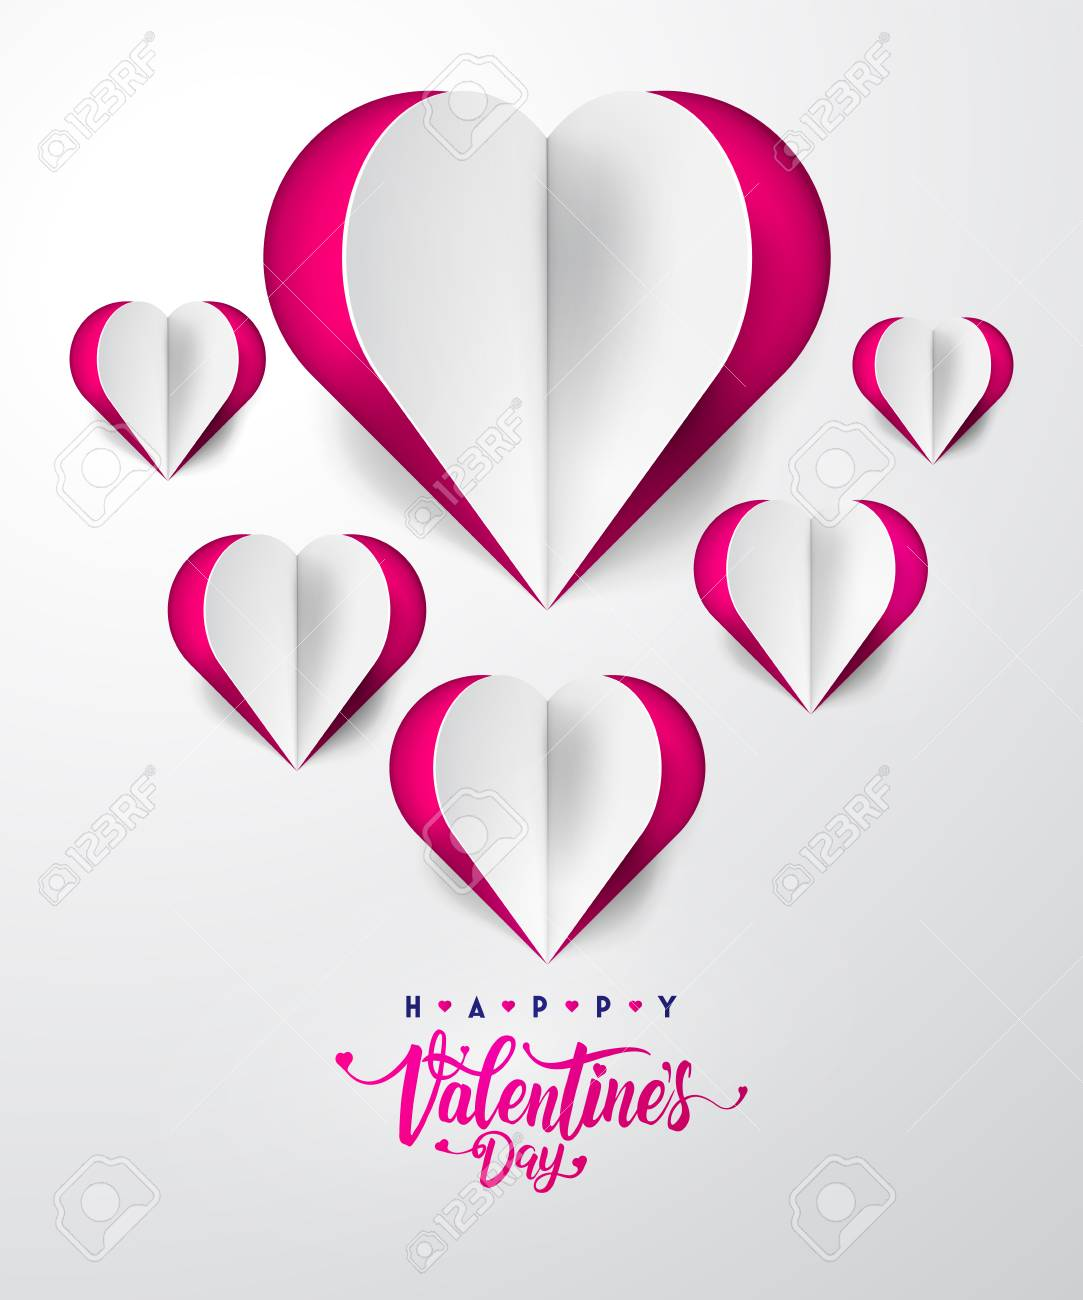 Invitation Card Valentine S Day With Typography And Cut Paper